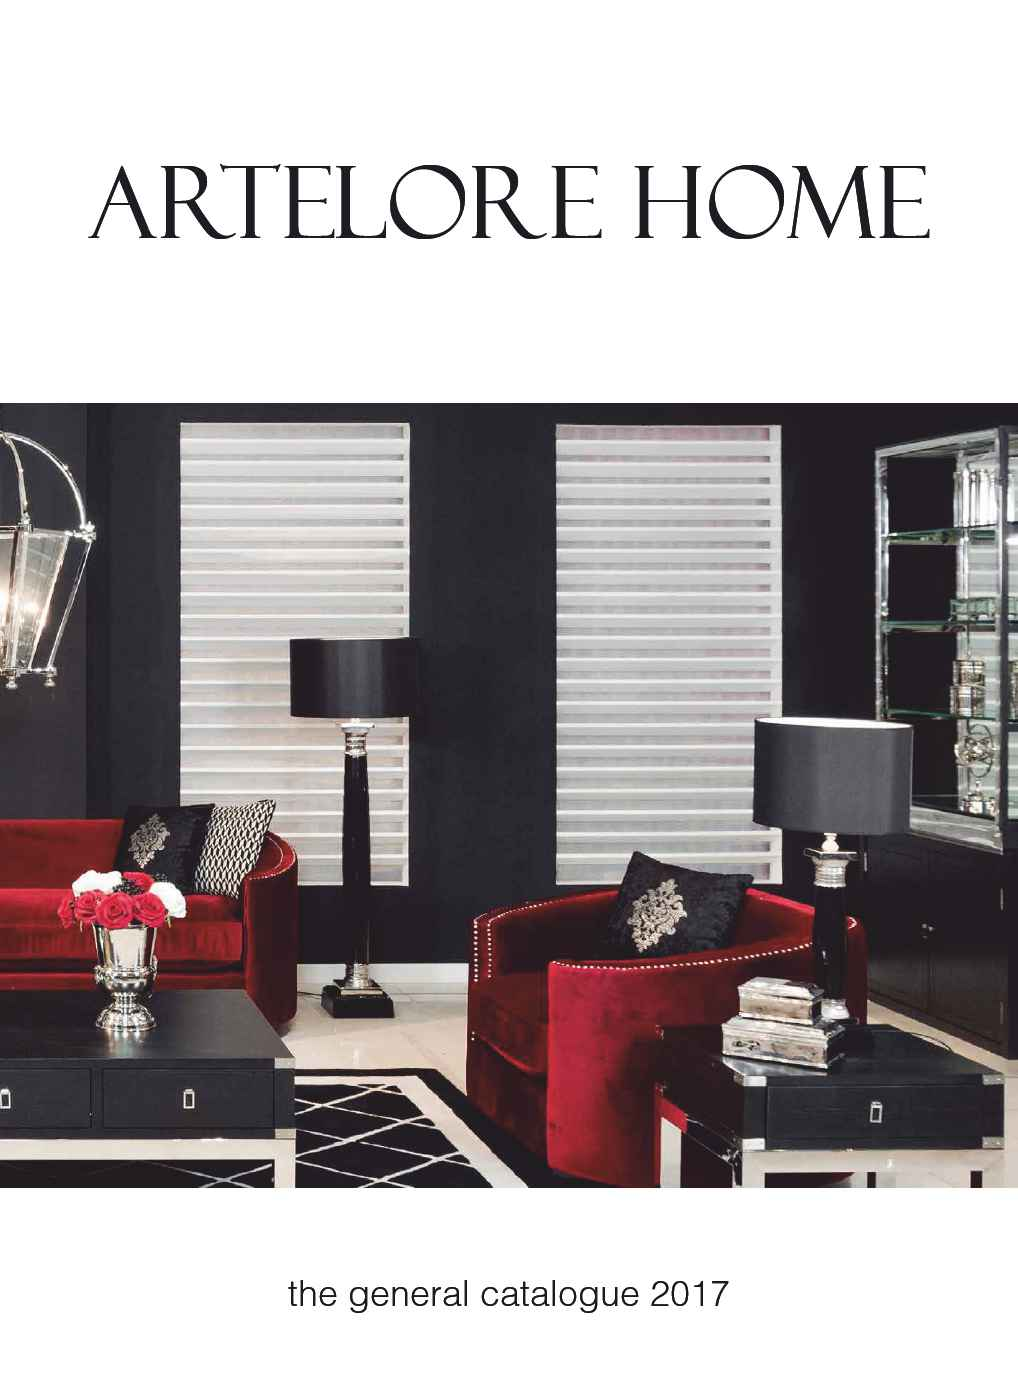 Artelore Home - Catalogo Generale 2017